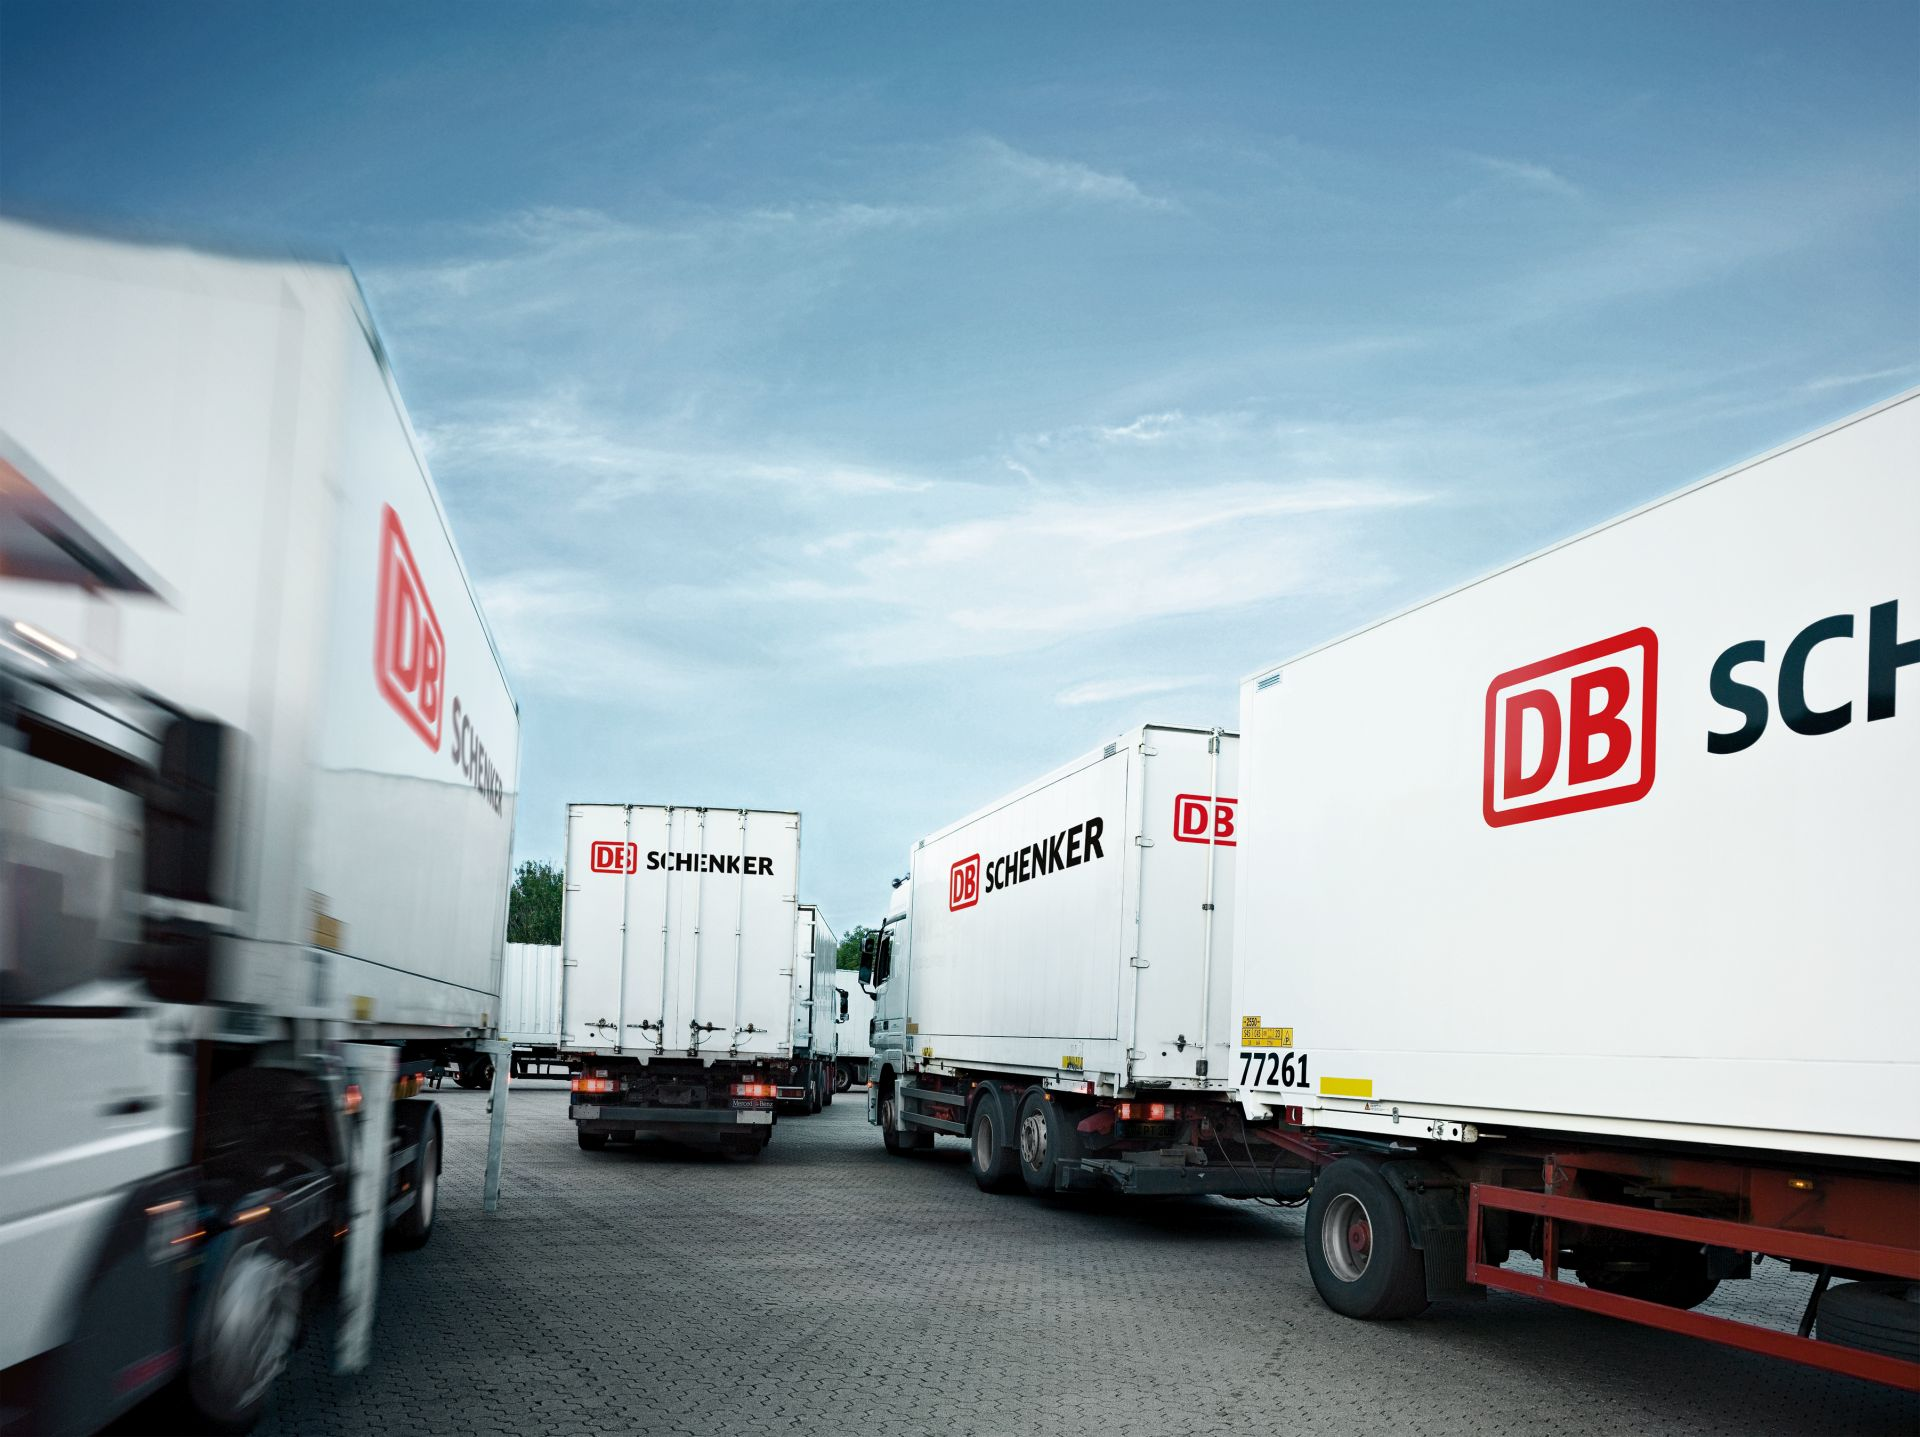 Word has it DB Schenker is up for sale – could DSV create a real logistics giant?